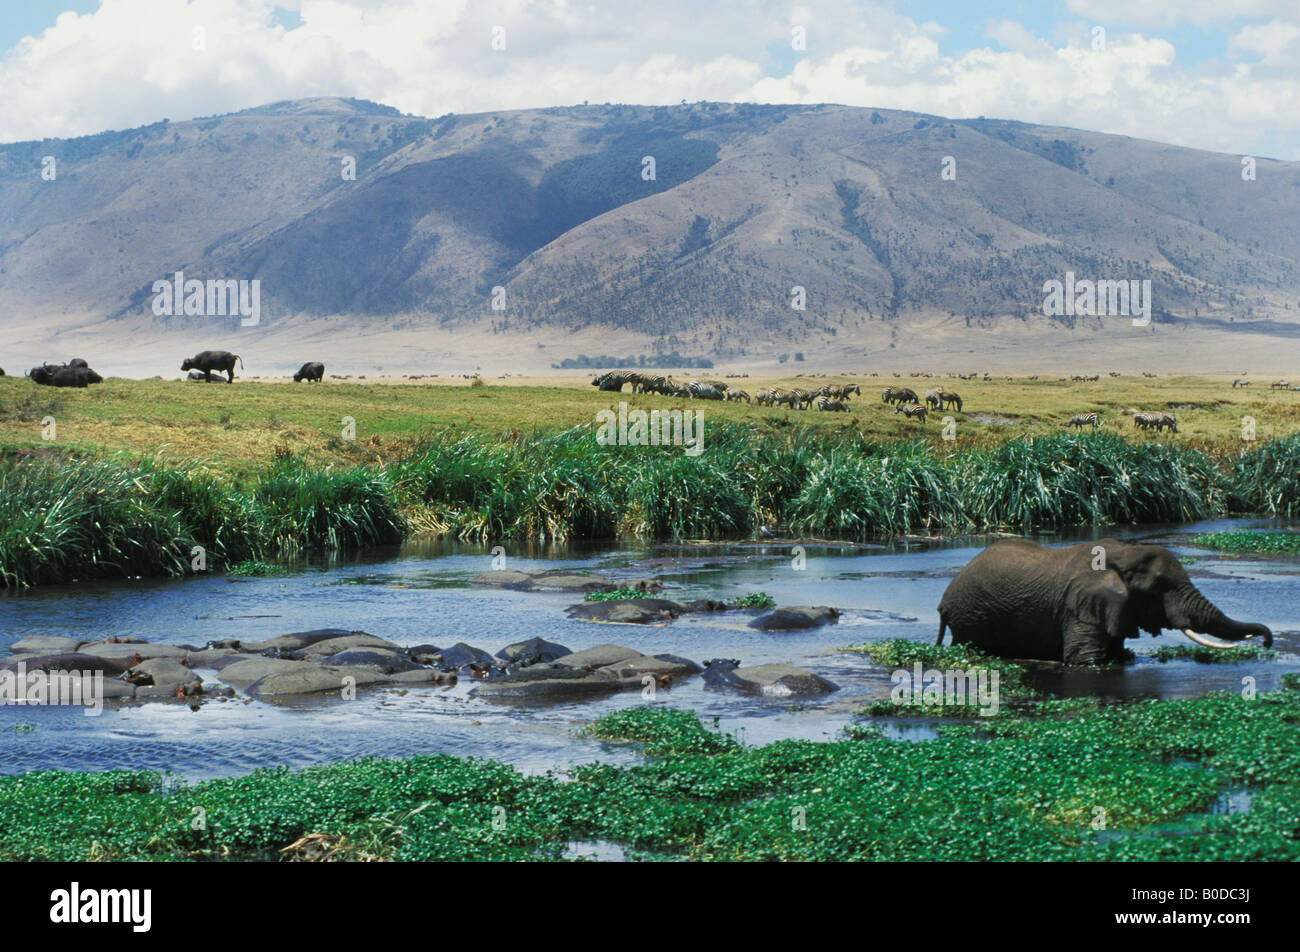 Elephant feeds in Hippo pool at Ngorongoro Crater in Tanzania Africa - Stock Image